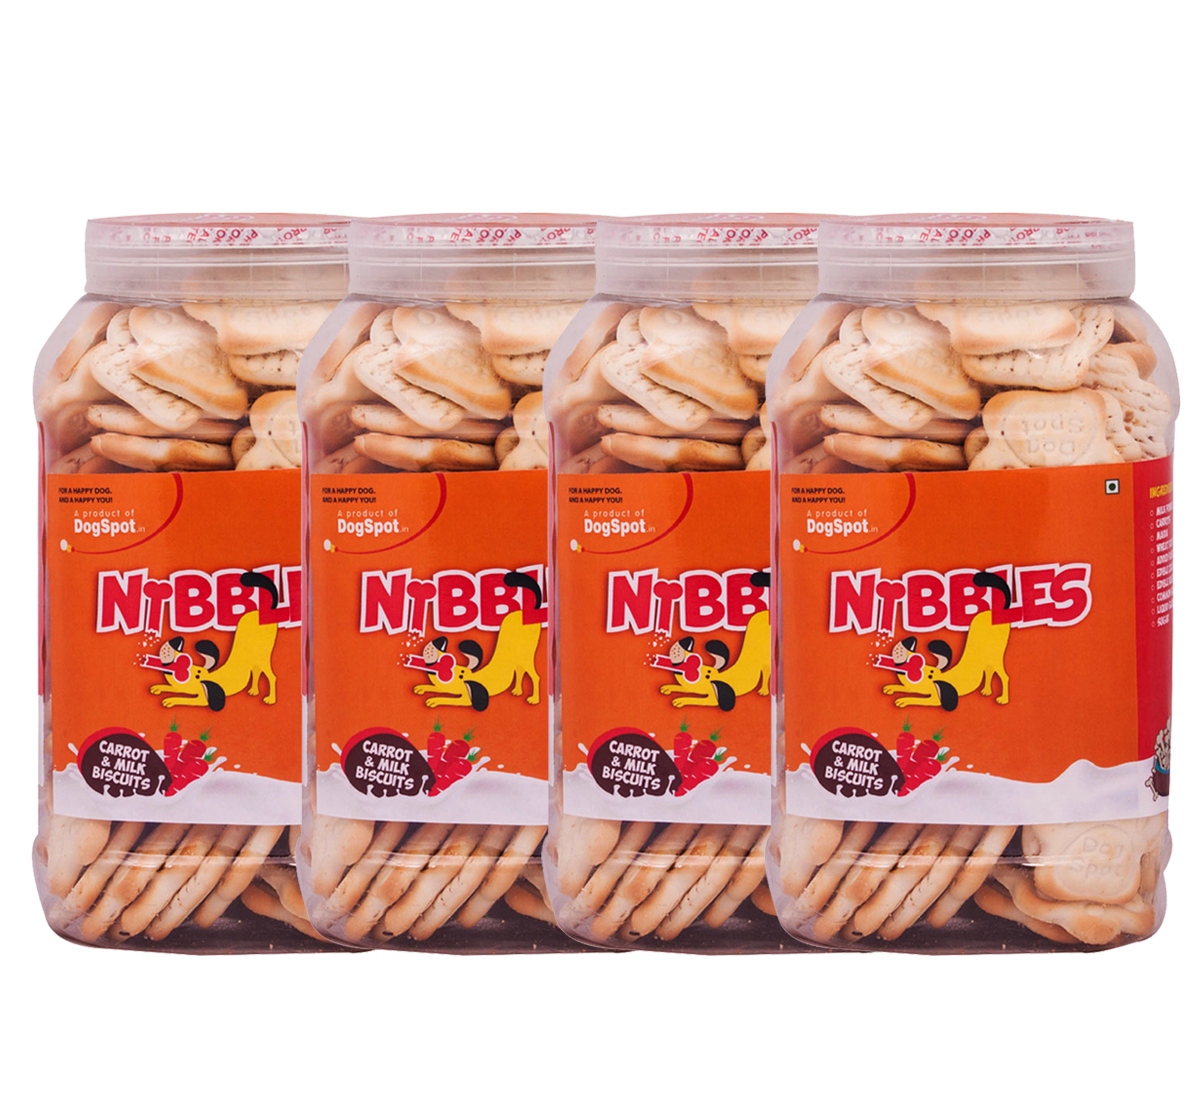 Nibbles Carrot & Milk Dog Biscuit - 1 kg (Pack Of 4)